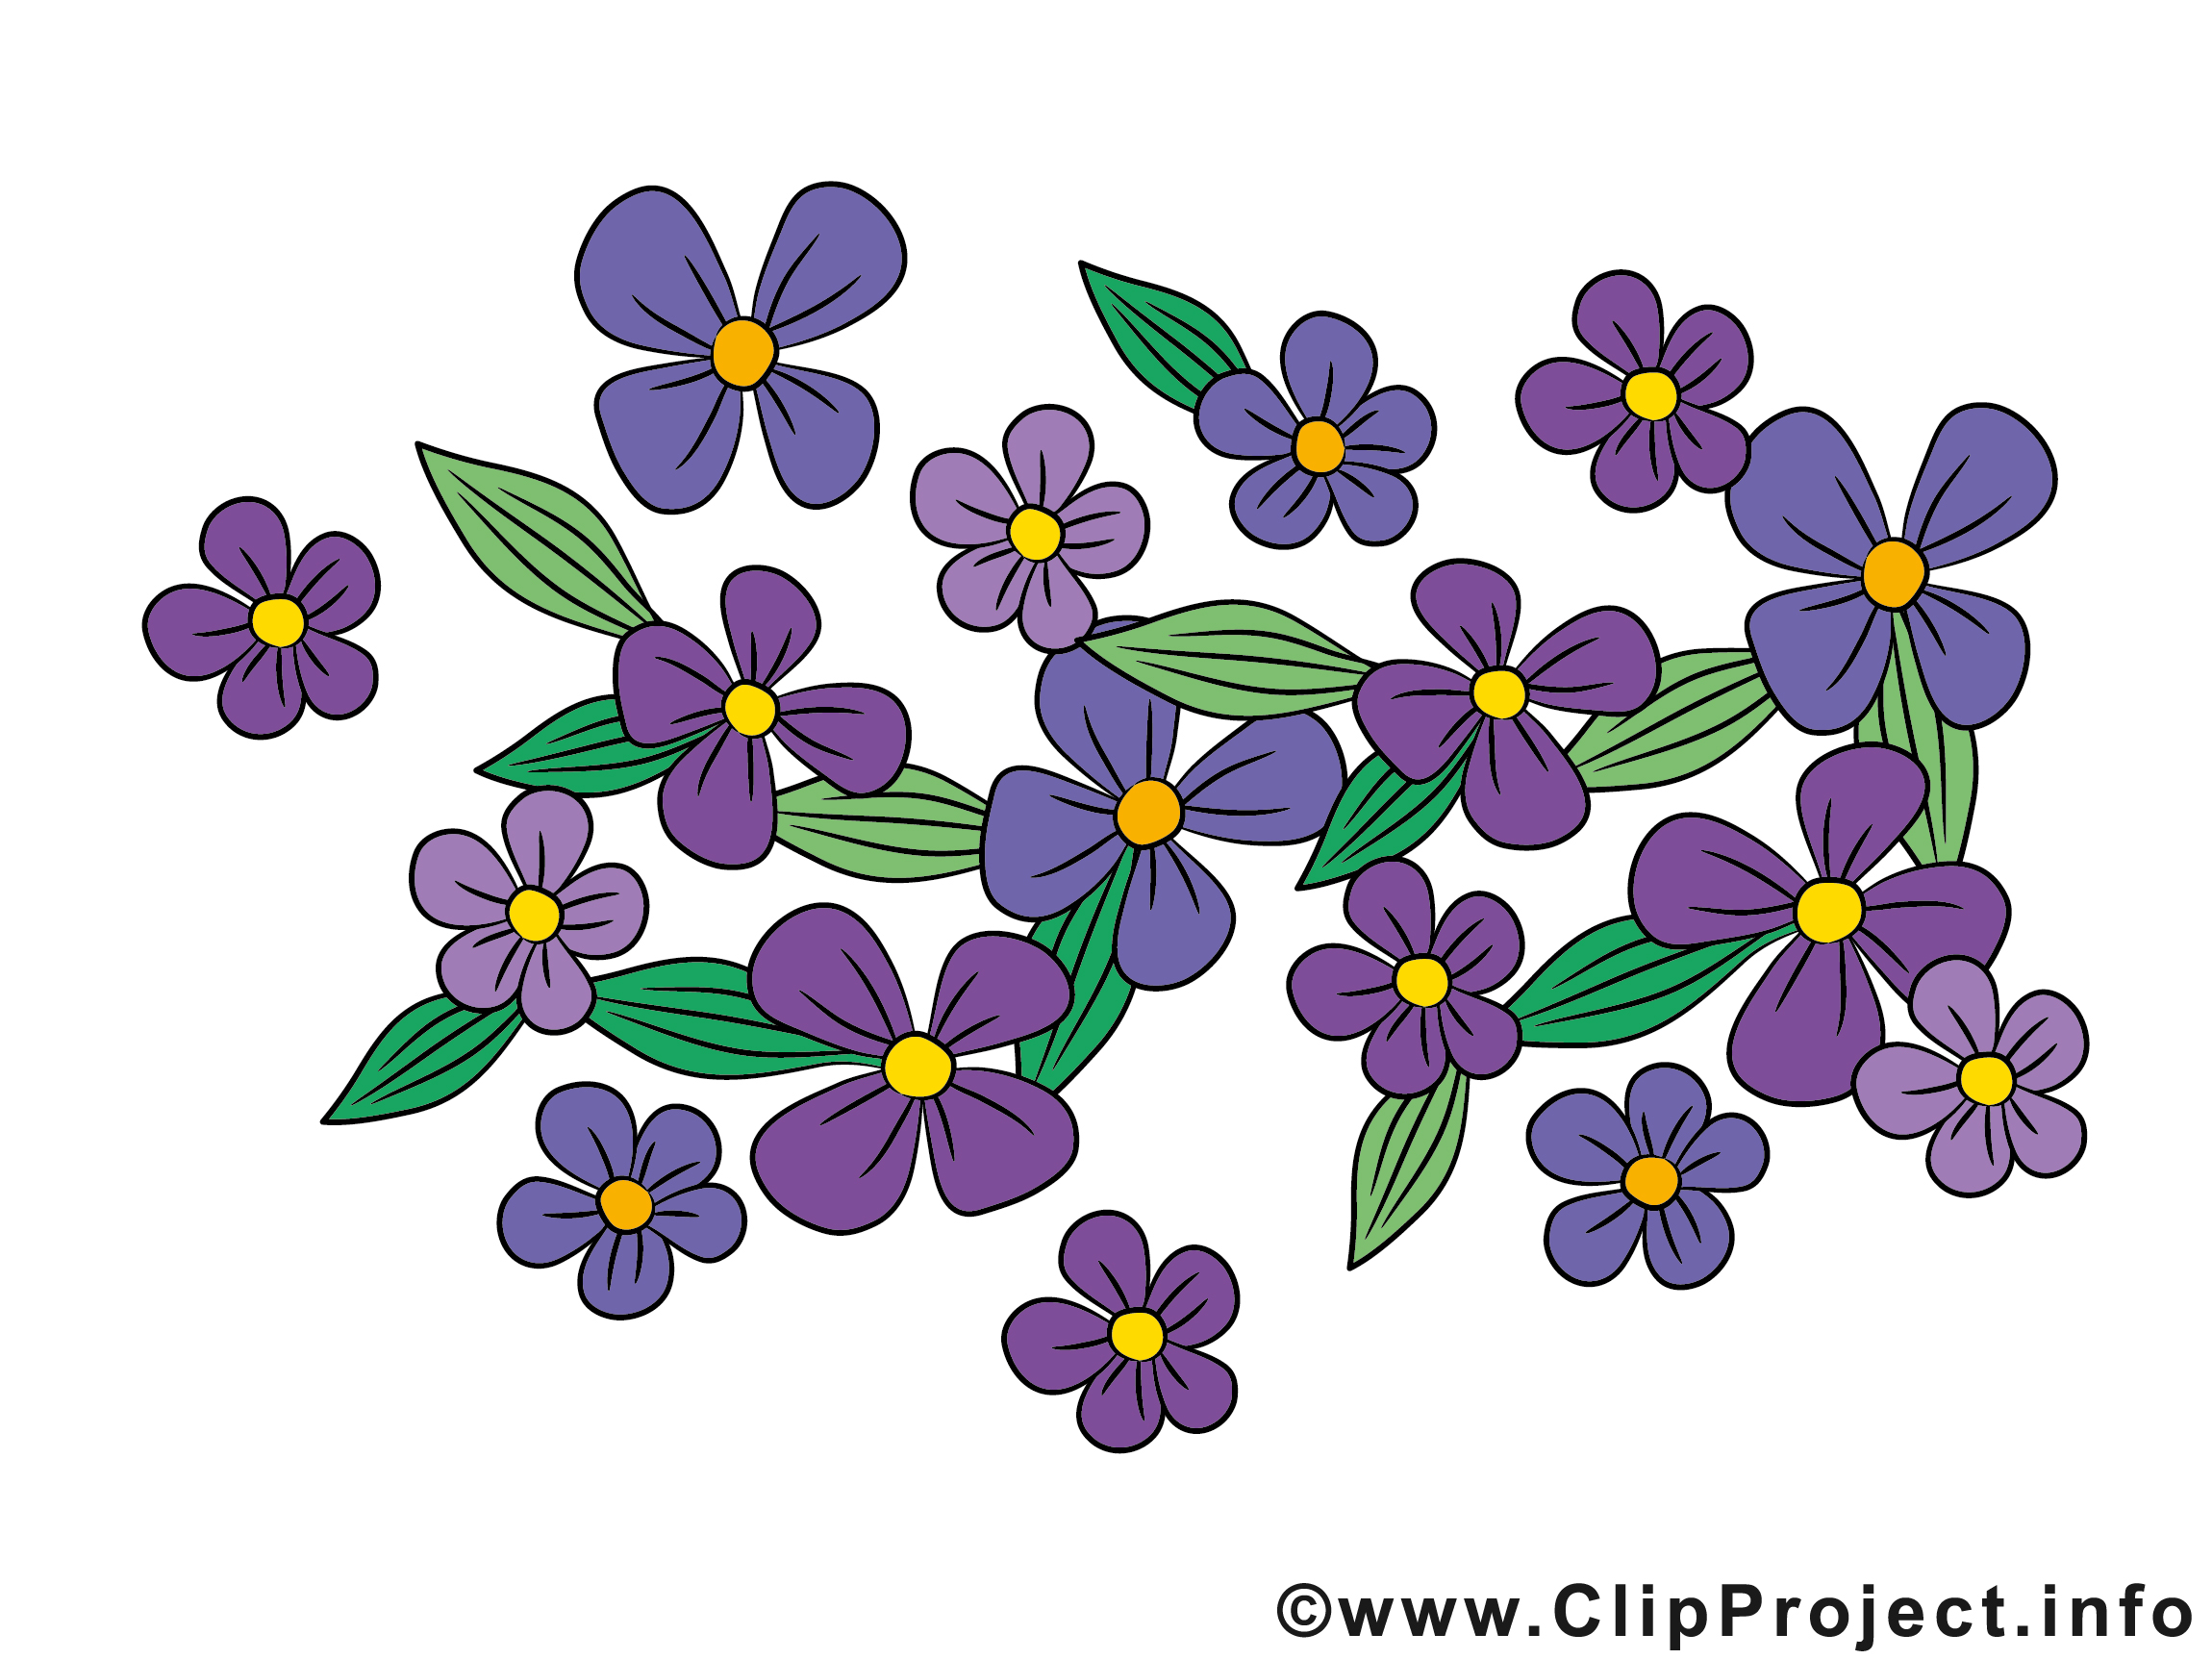 Blumenstrau clipart geburtstag jpg free download Blumen Bilder, Cliparts, Cartoons, Grafiken, Illustrationen, Gifs ... jpg free download